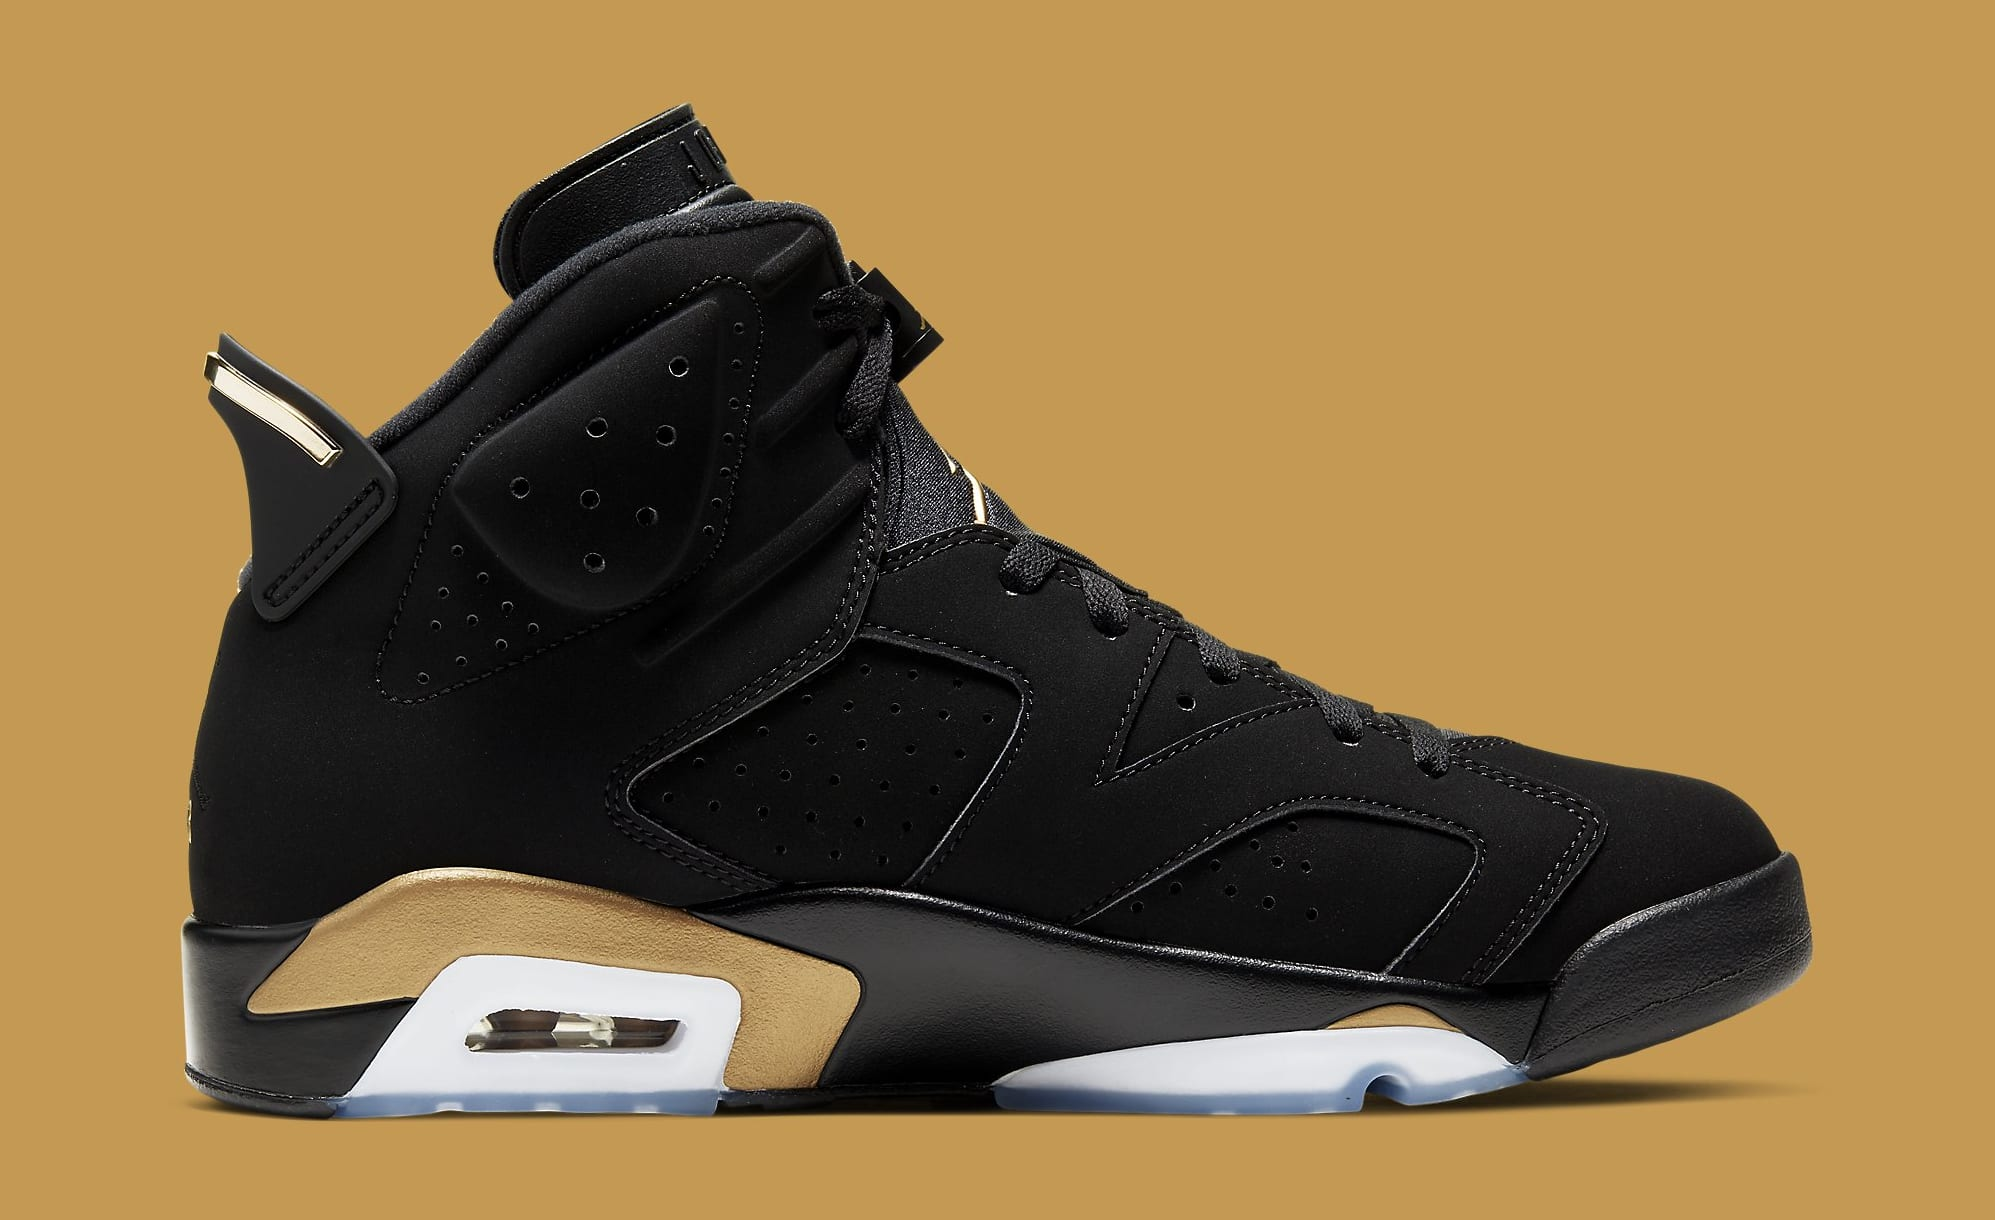 Air Jordan 6 VI Retro 'DMP' CT4954-007 Medial